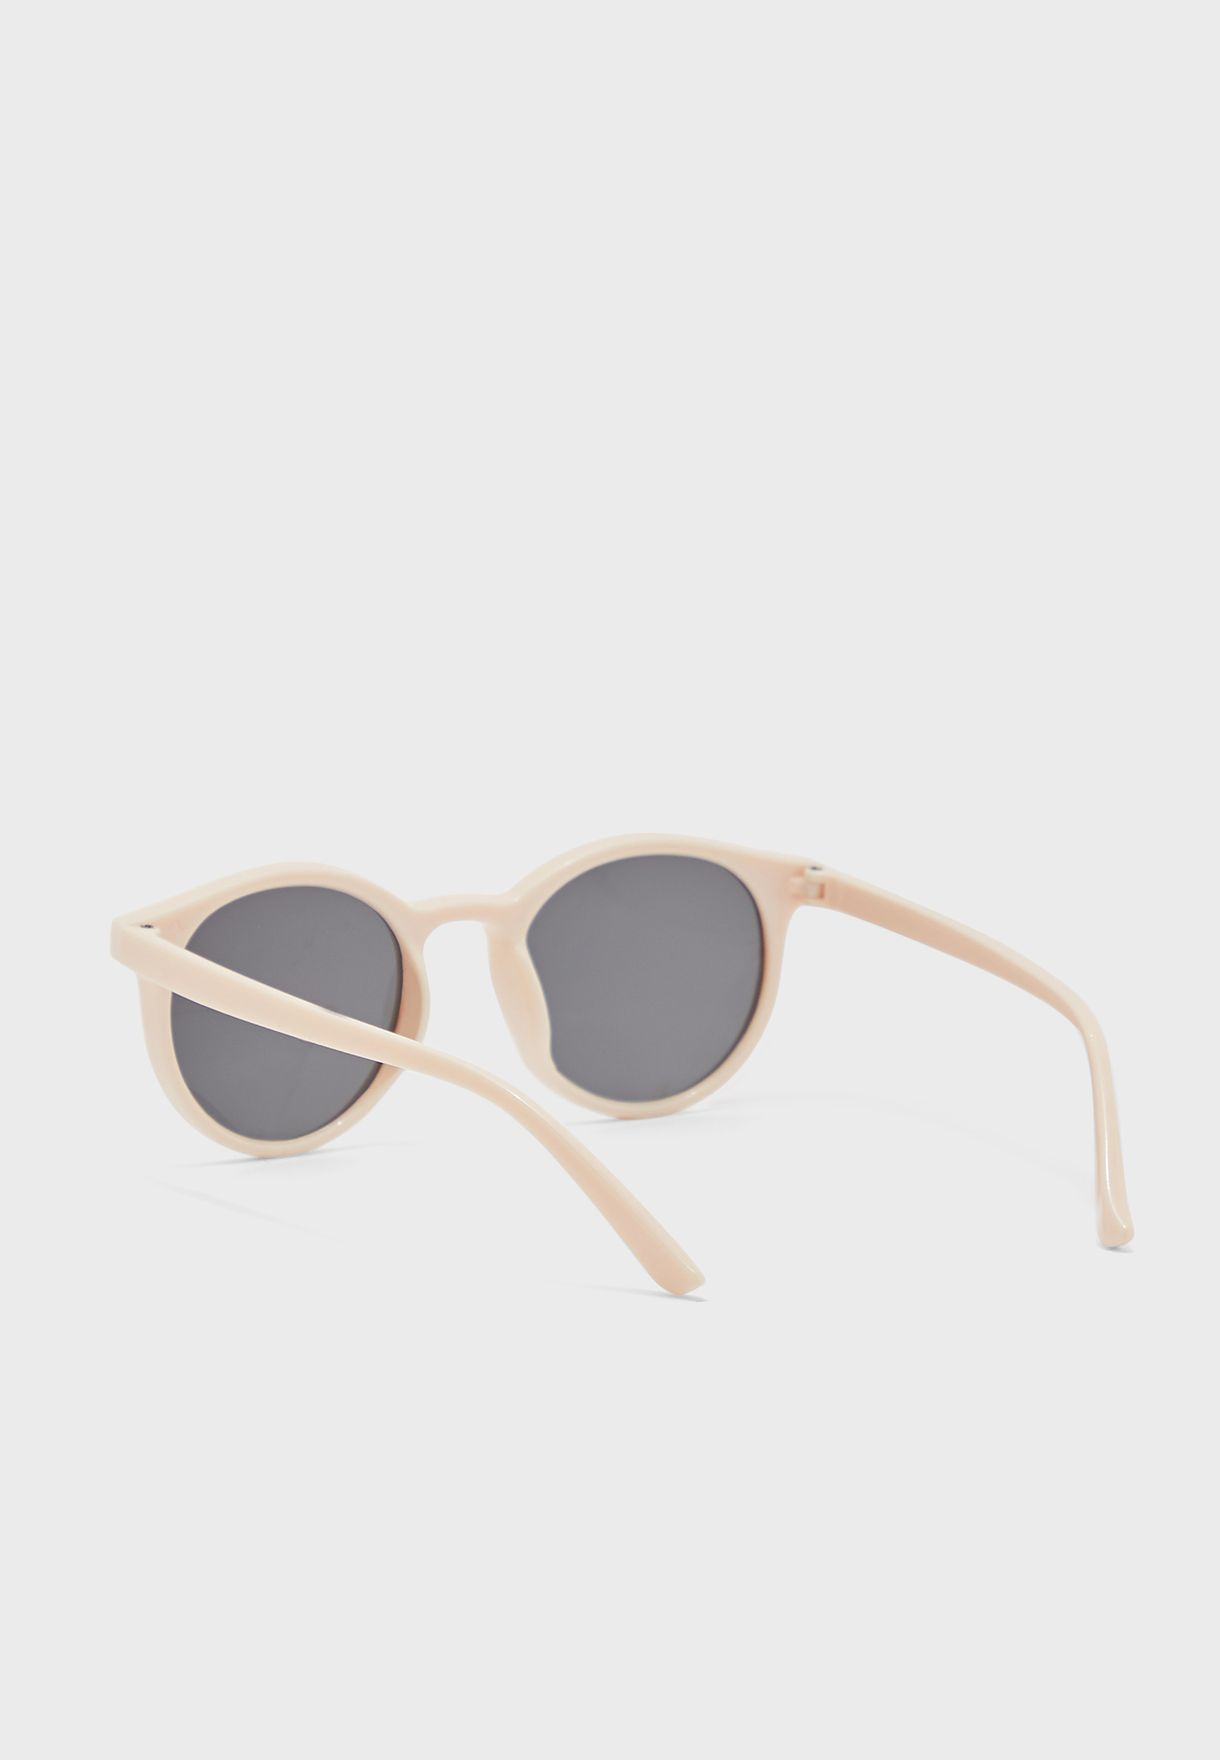 Rounded Lens Sunglasses